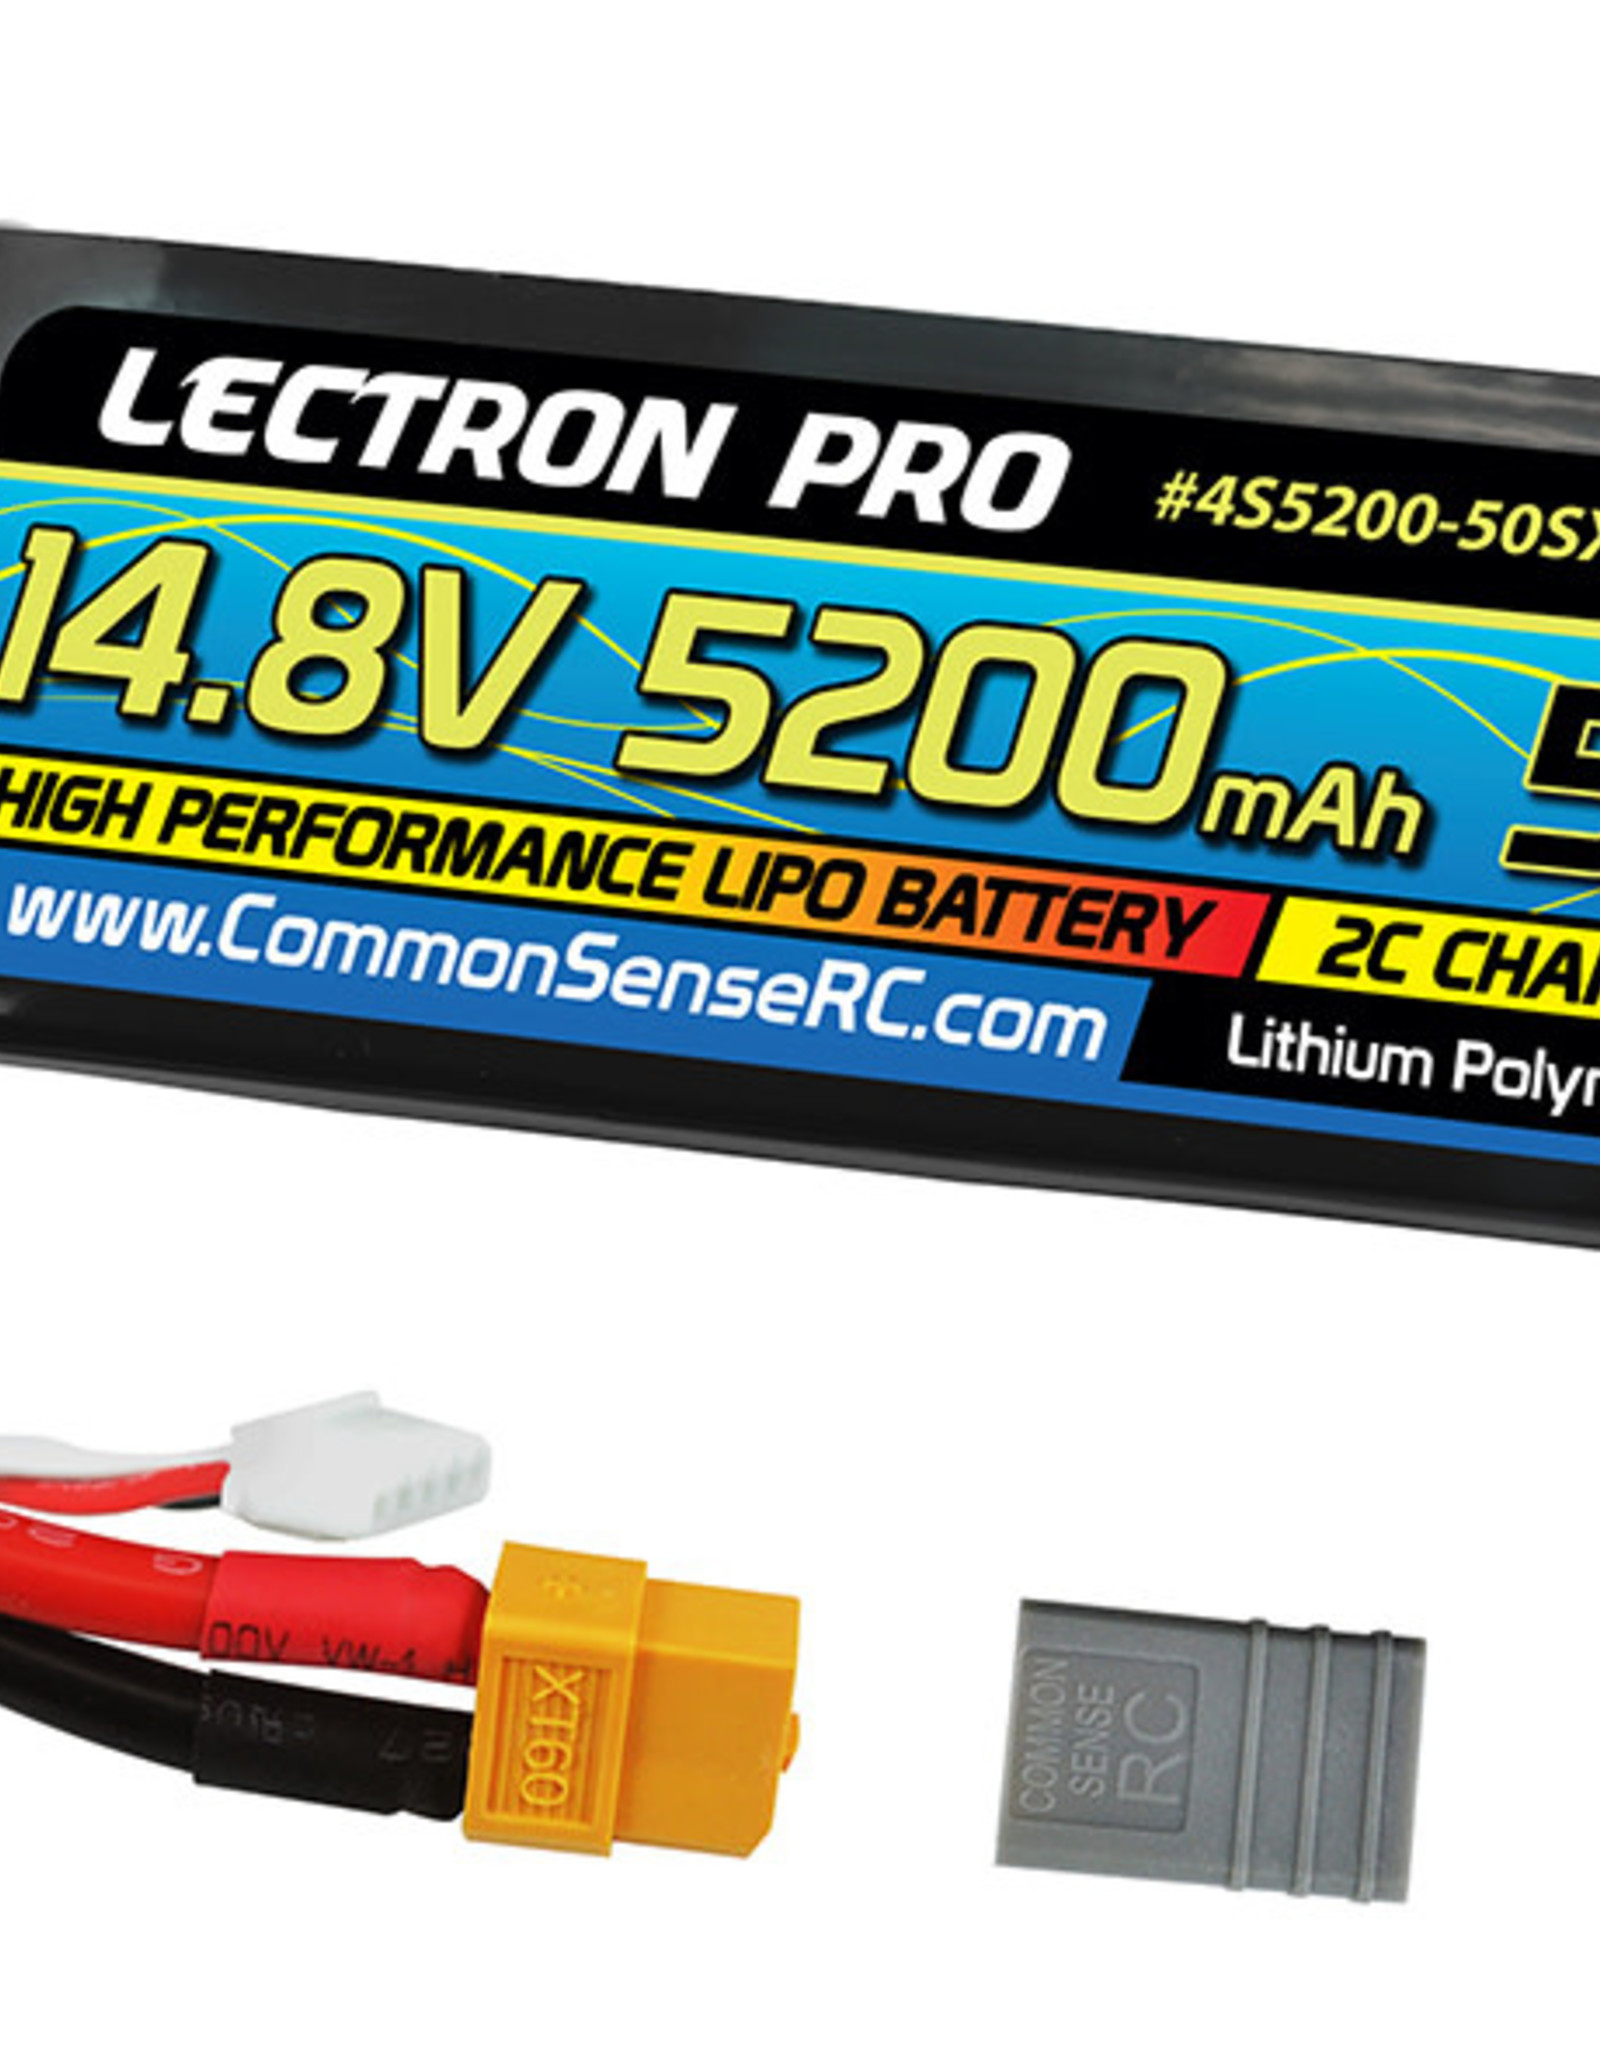 Common Sense Rc Lectron Pro™ 14.8V 5200mAh 50C Lipo Battery Soft Case with XT60 Connector + CSRC adapter for XT60 batteries to popular RC vehicles